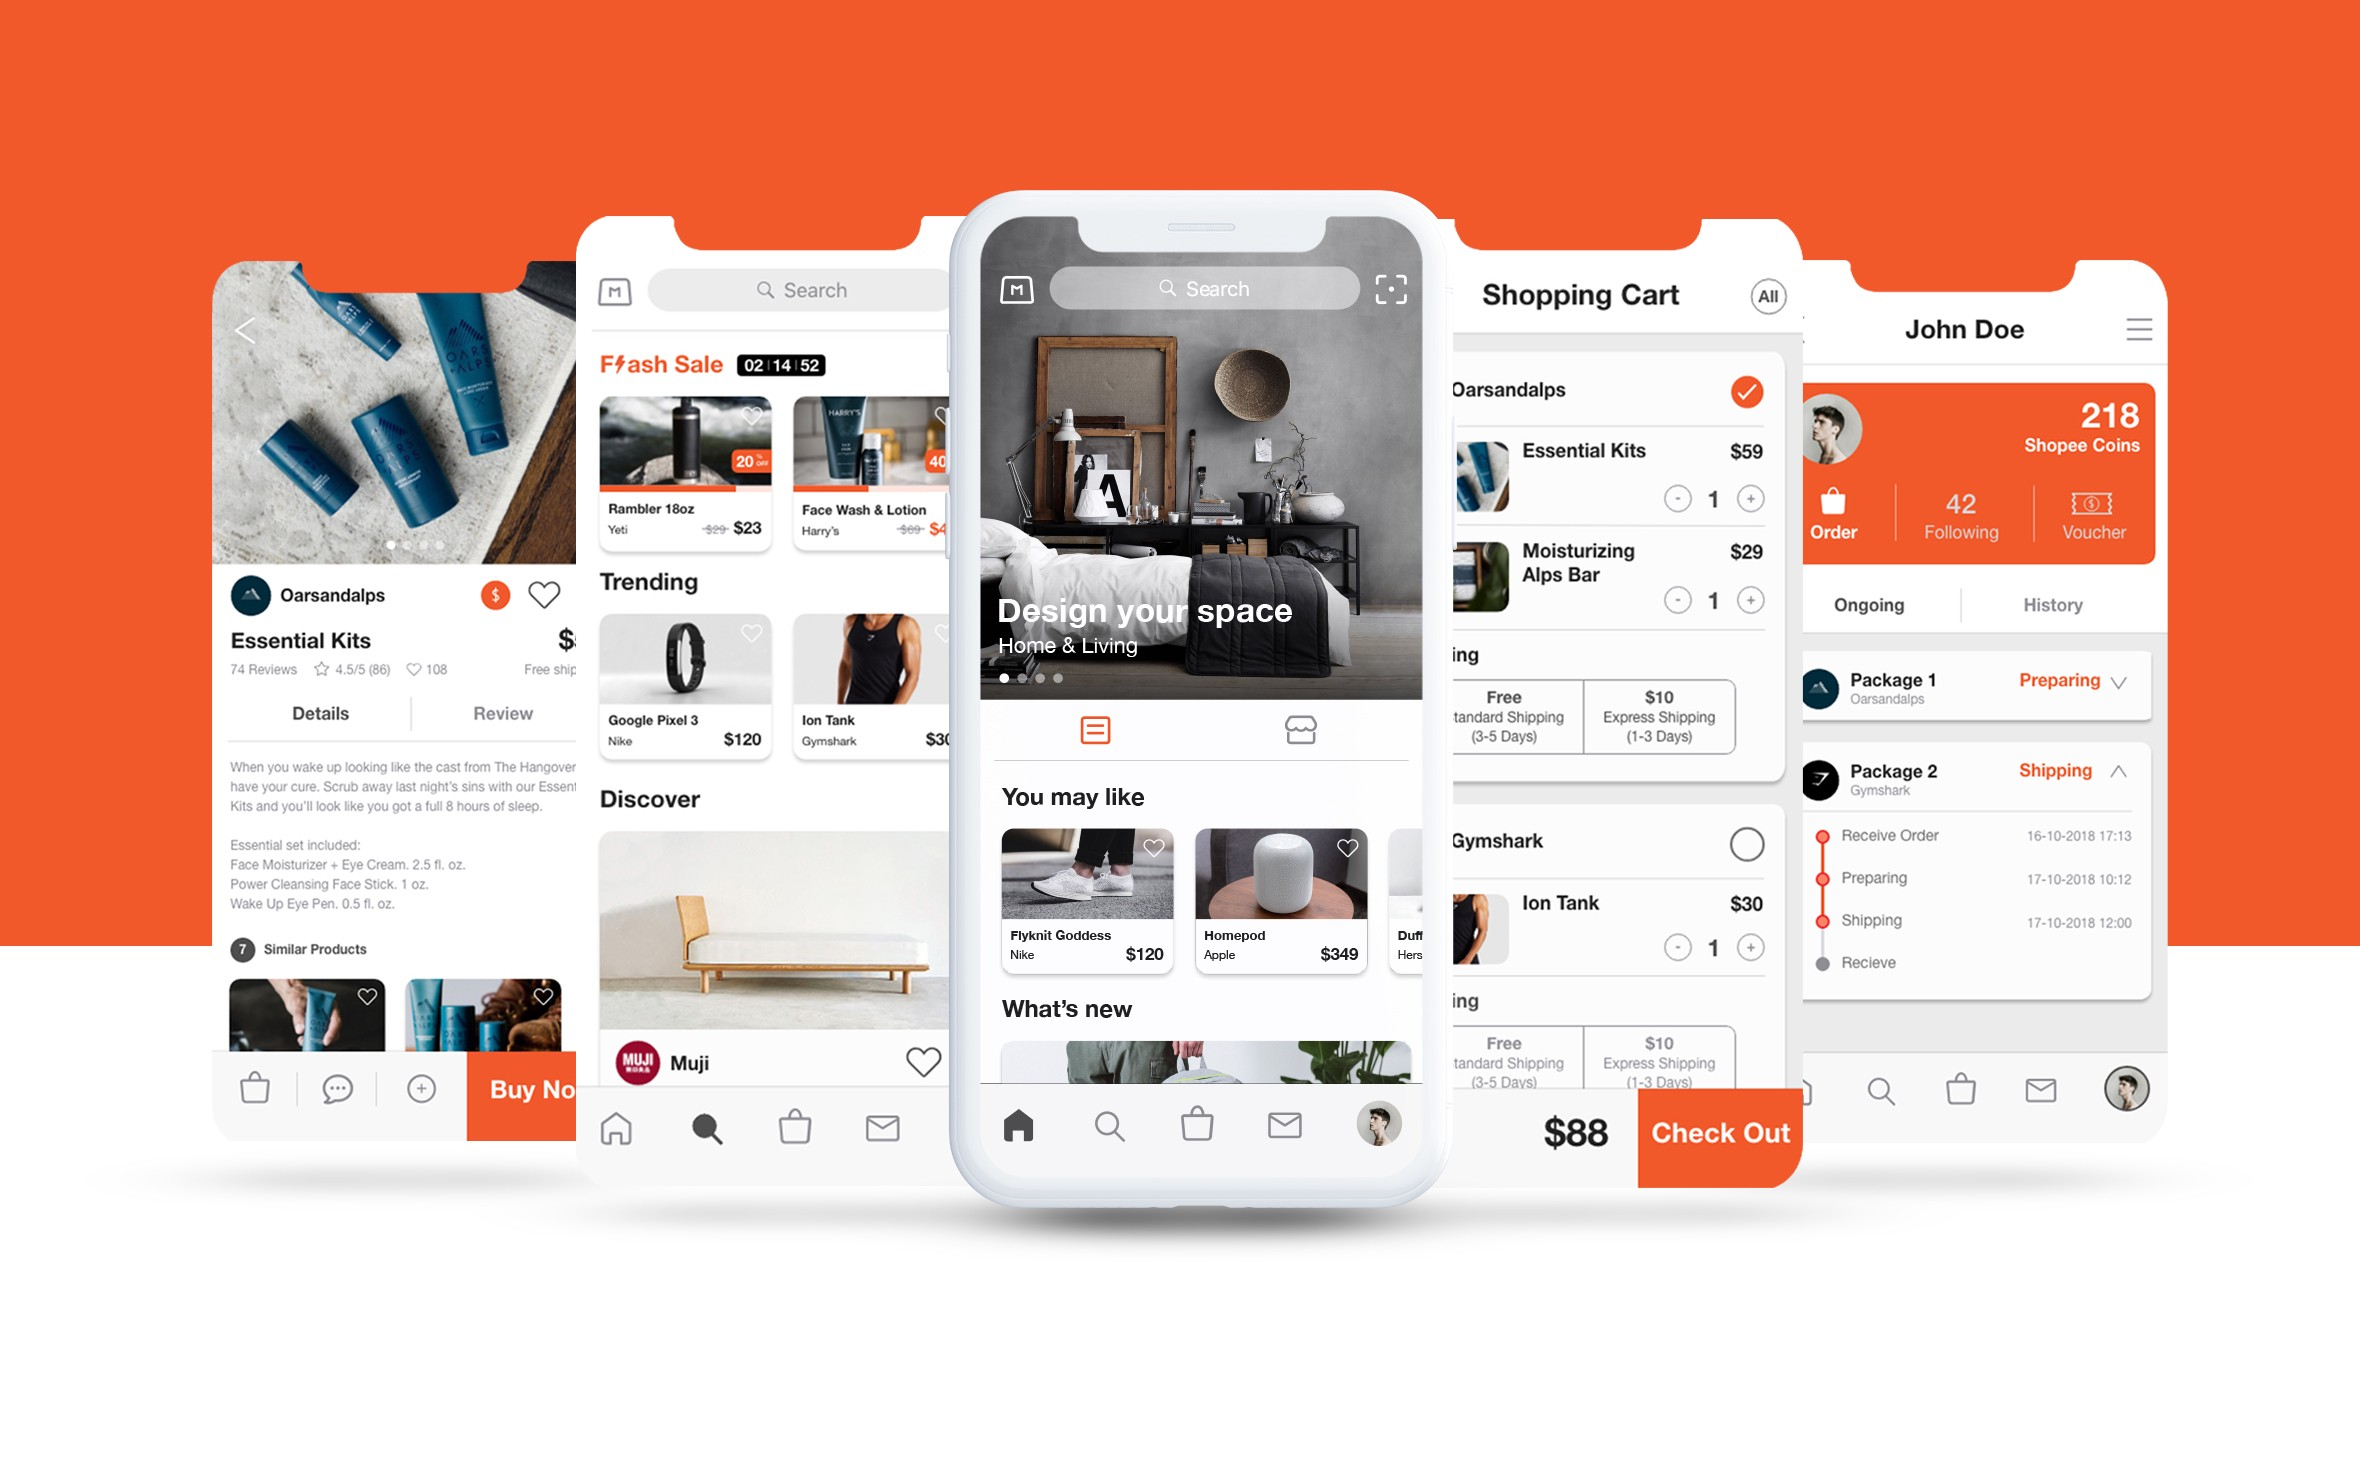 2a89f8b5a Redesigning an e-commerce app for Shopee — a UX case study